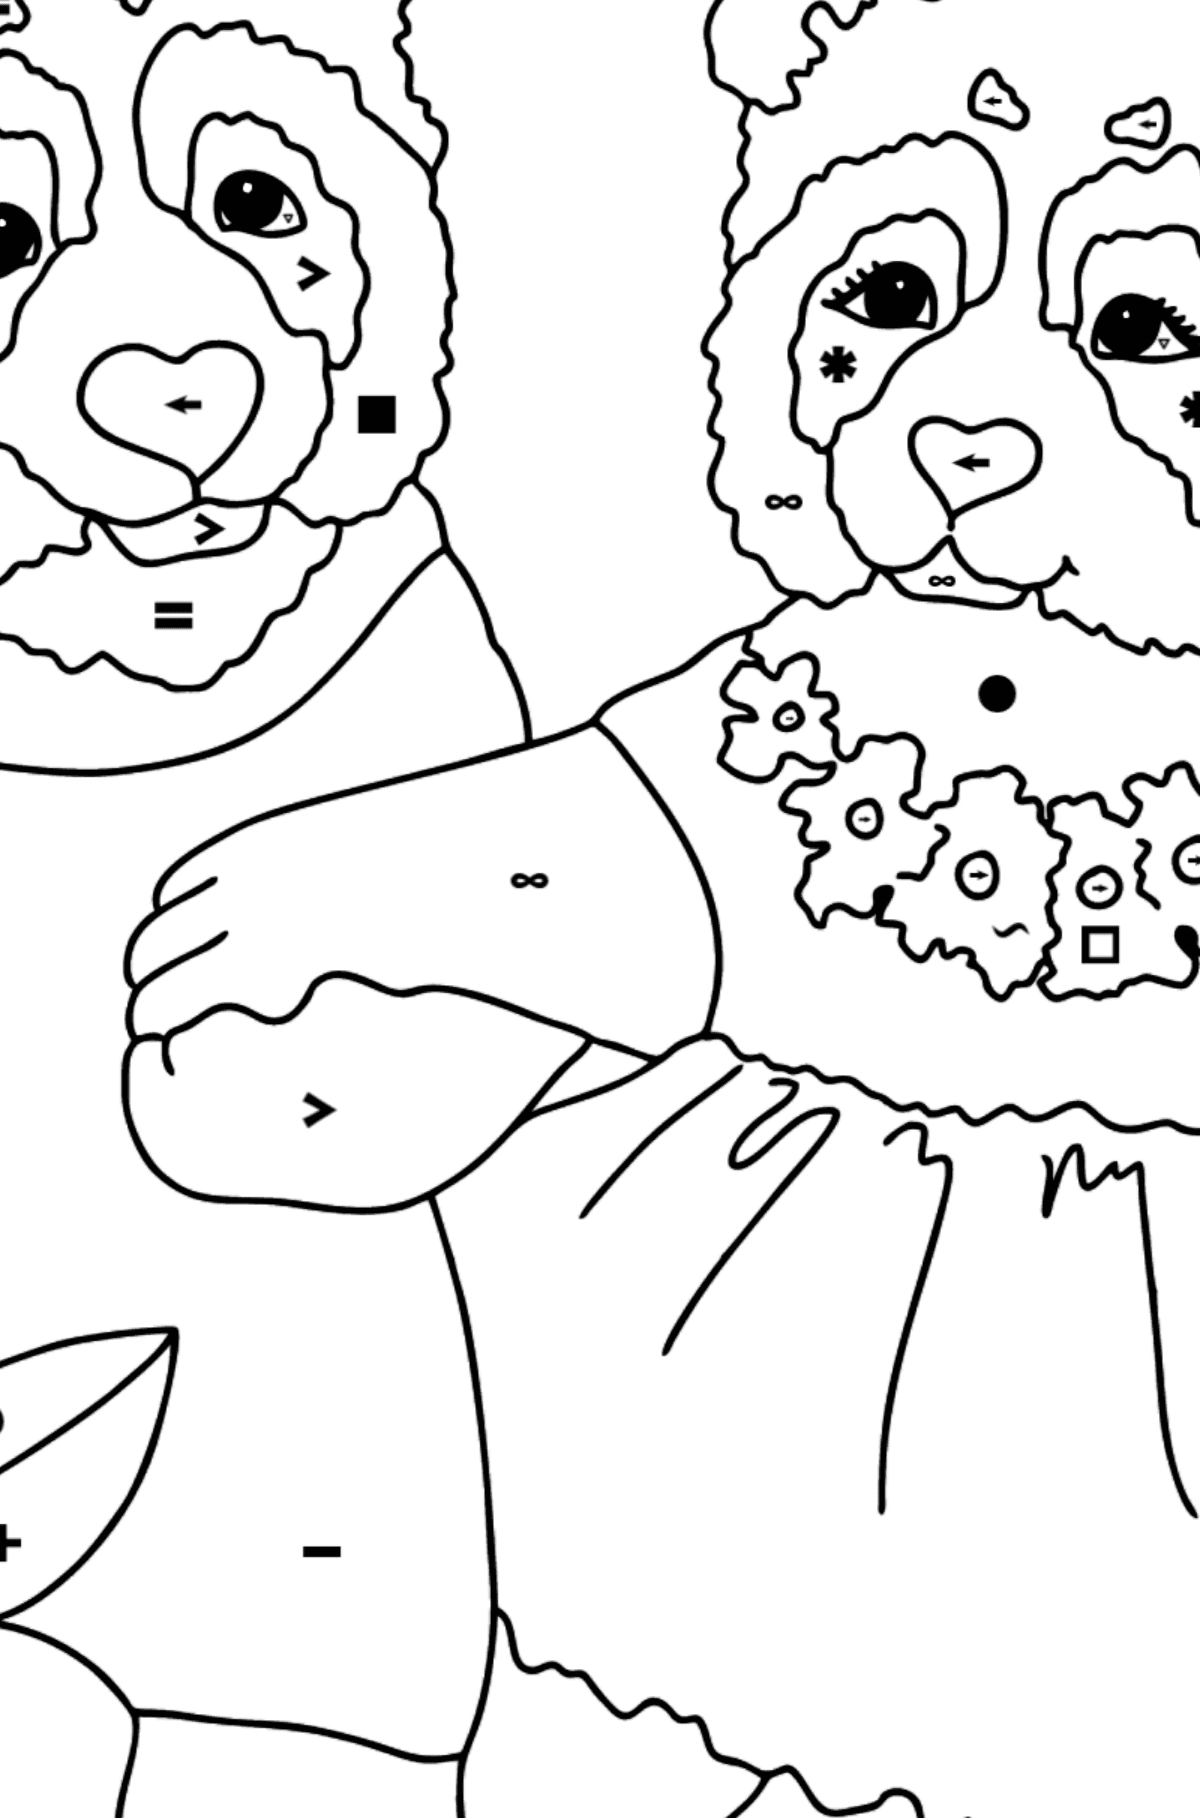 Coloring Page - Pandas are Having a Rest - Coloring by Symbols for Kids